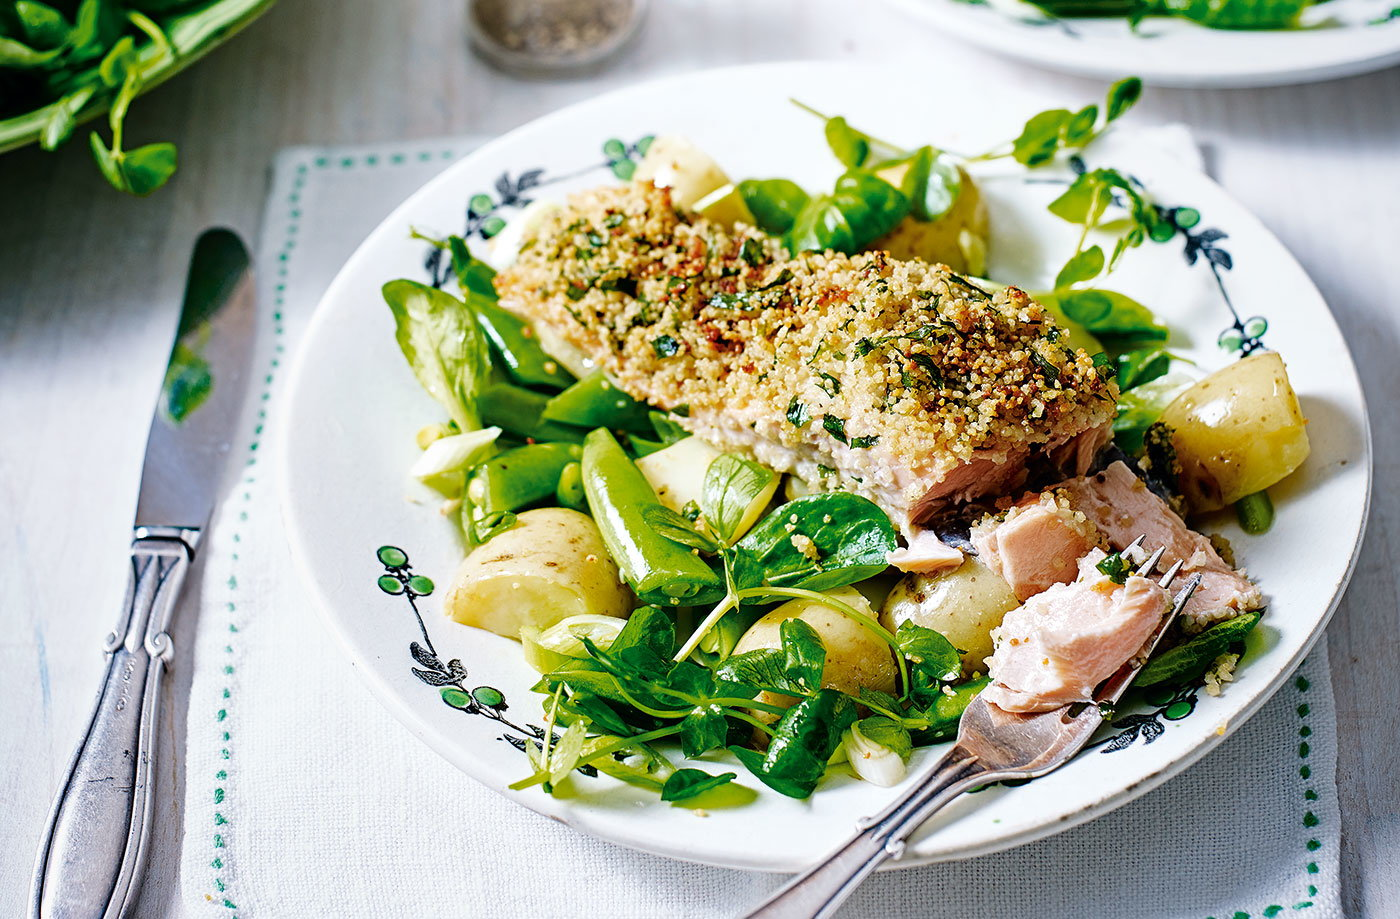 Couscous-crusted salmon with pea and potato salad recipe